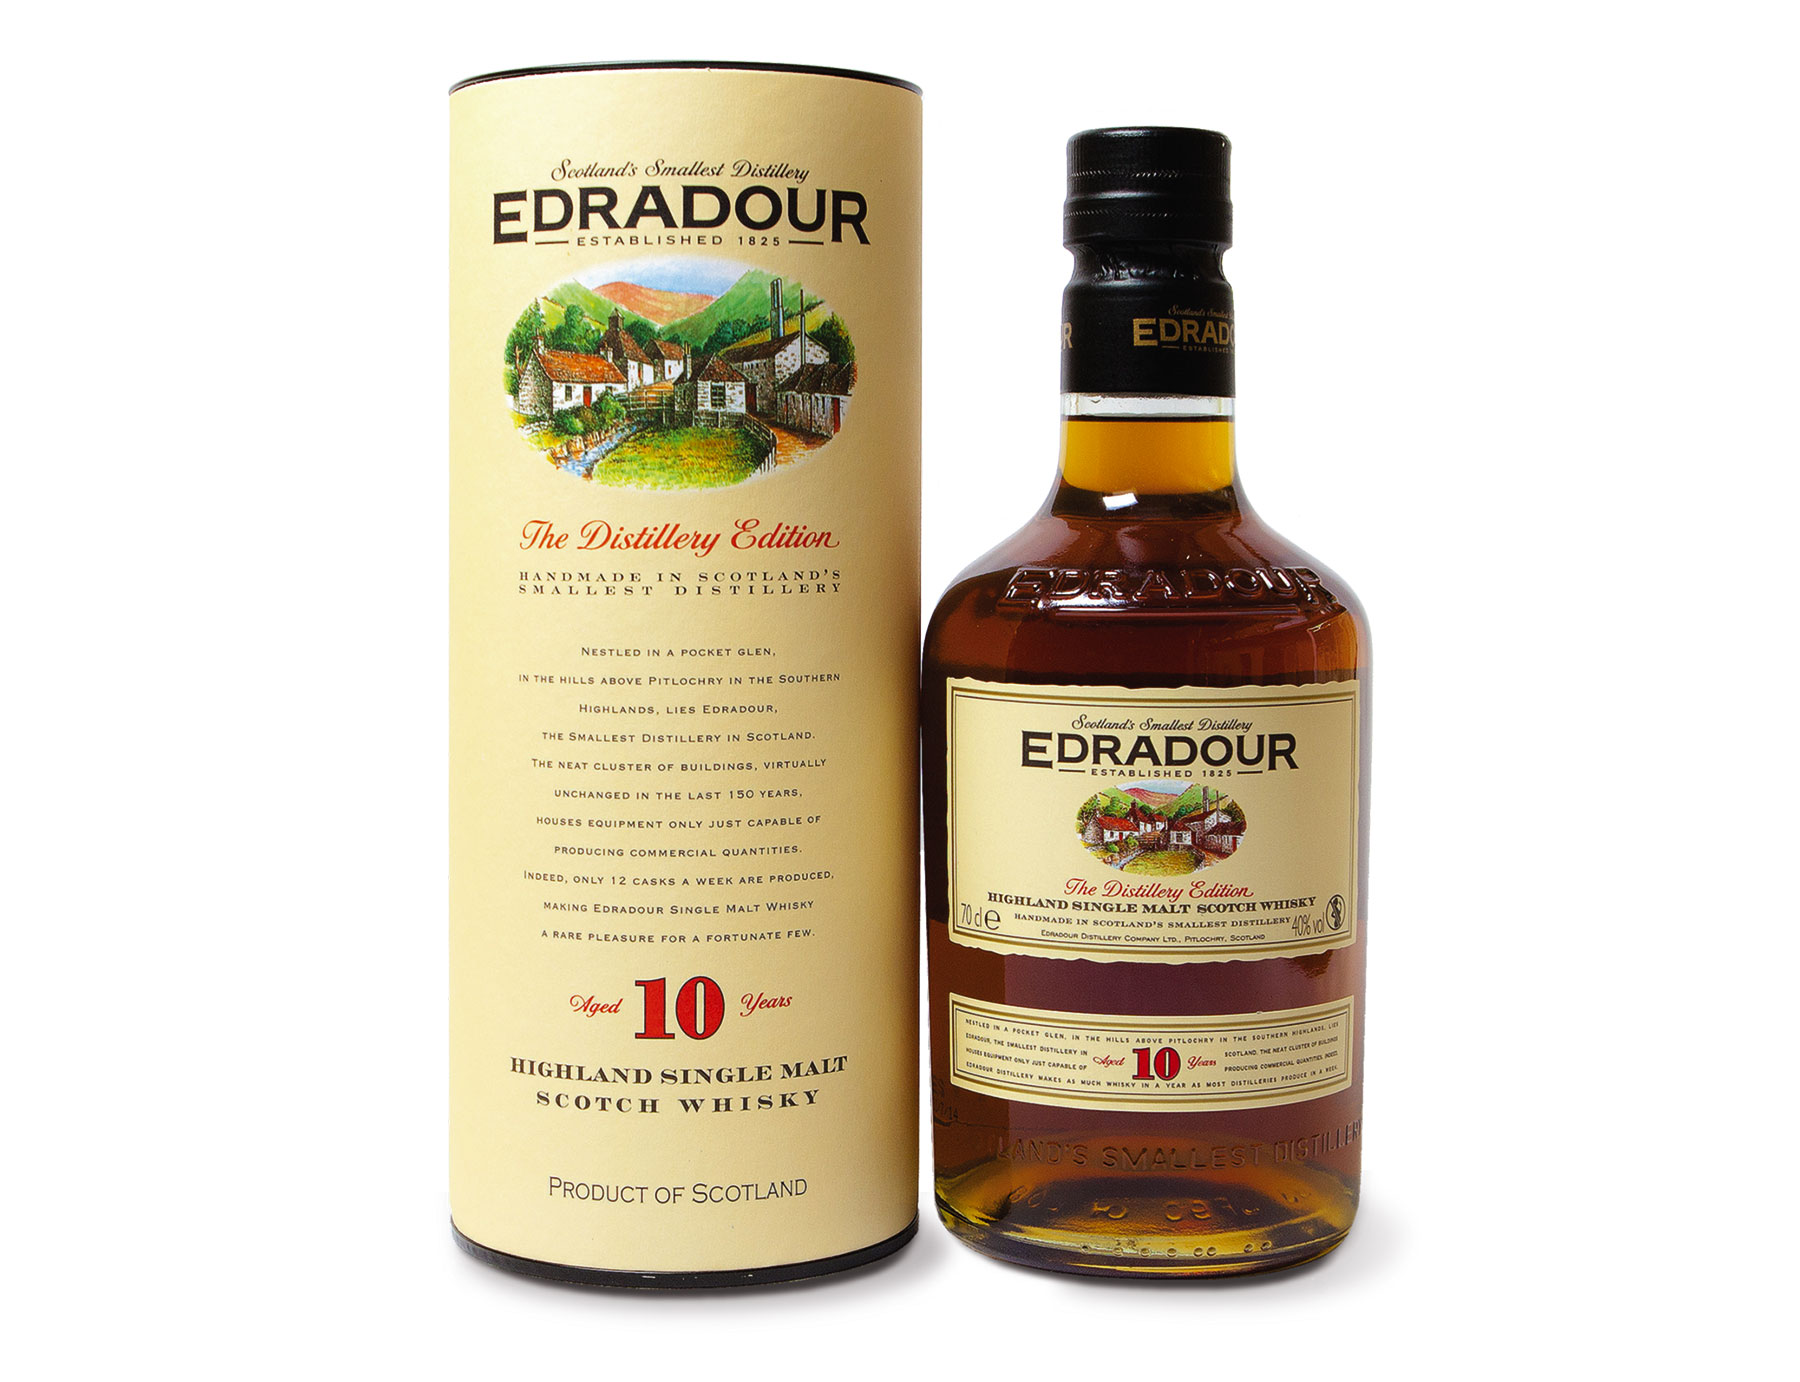 Edradour whiskey